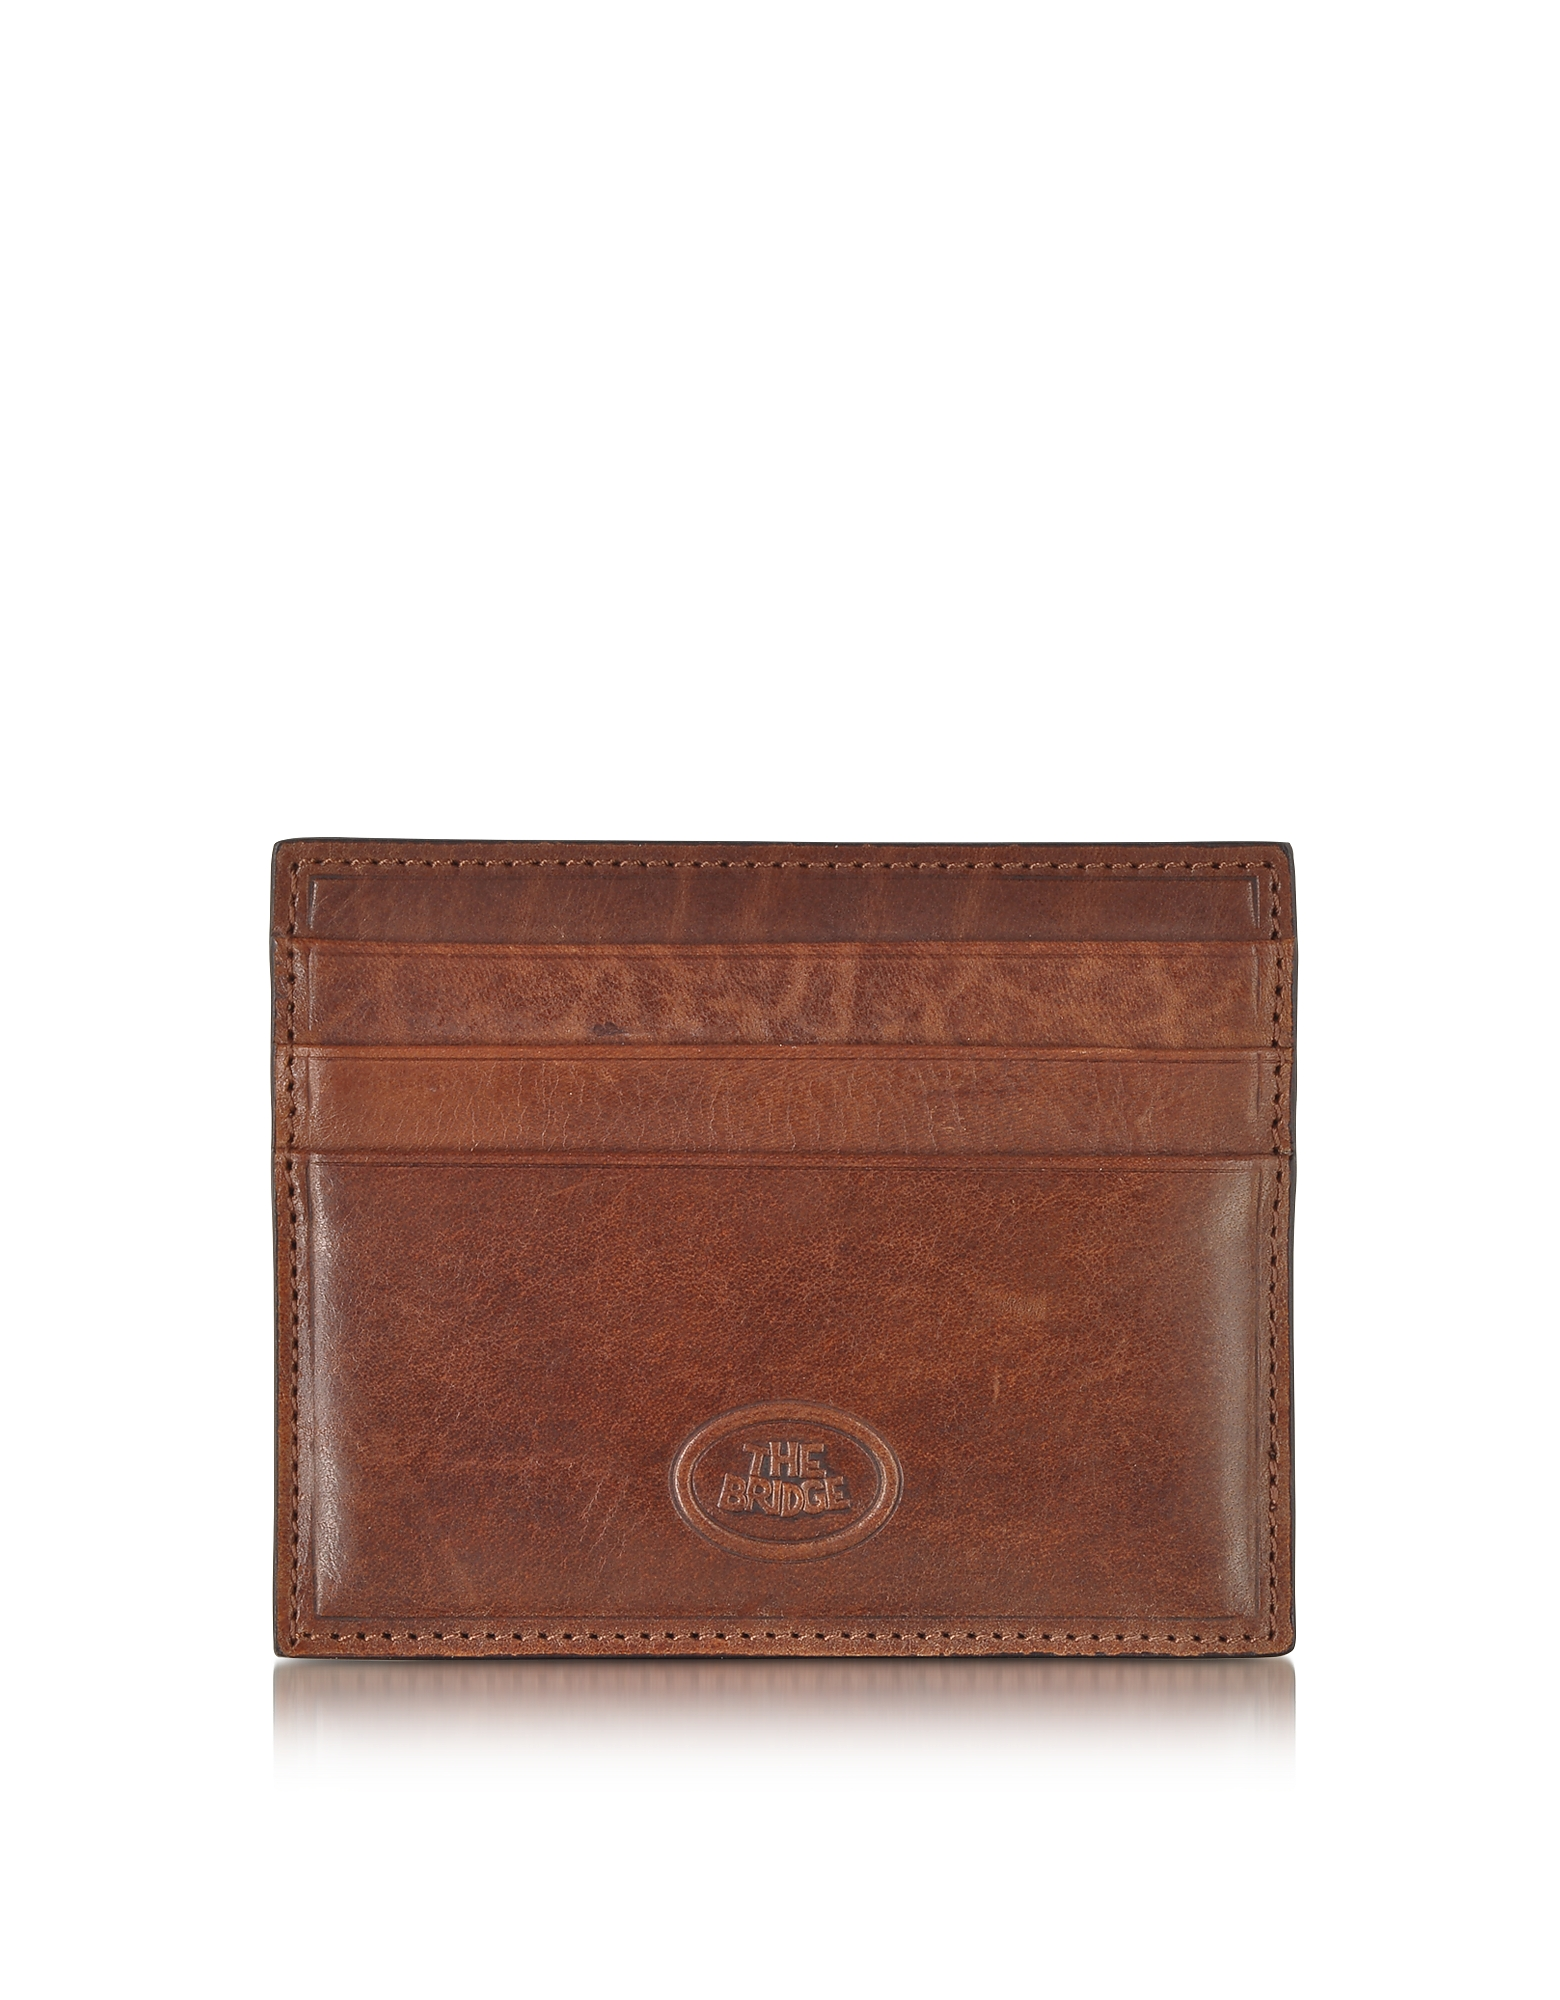 The Bridge Wallets, Story Uomo Leather Credit Card Holder